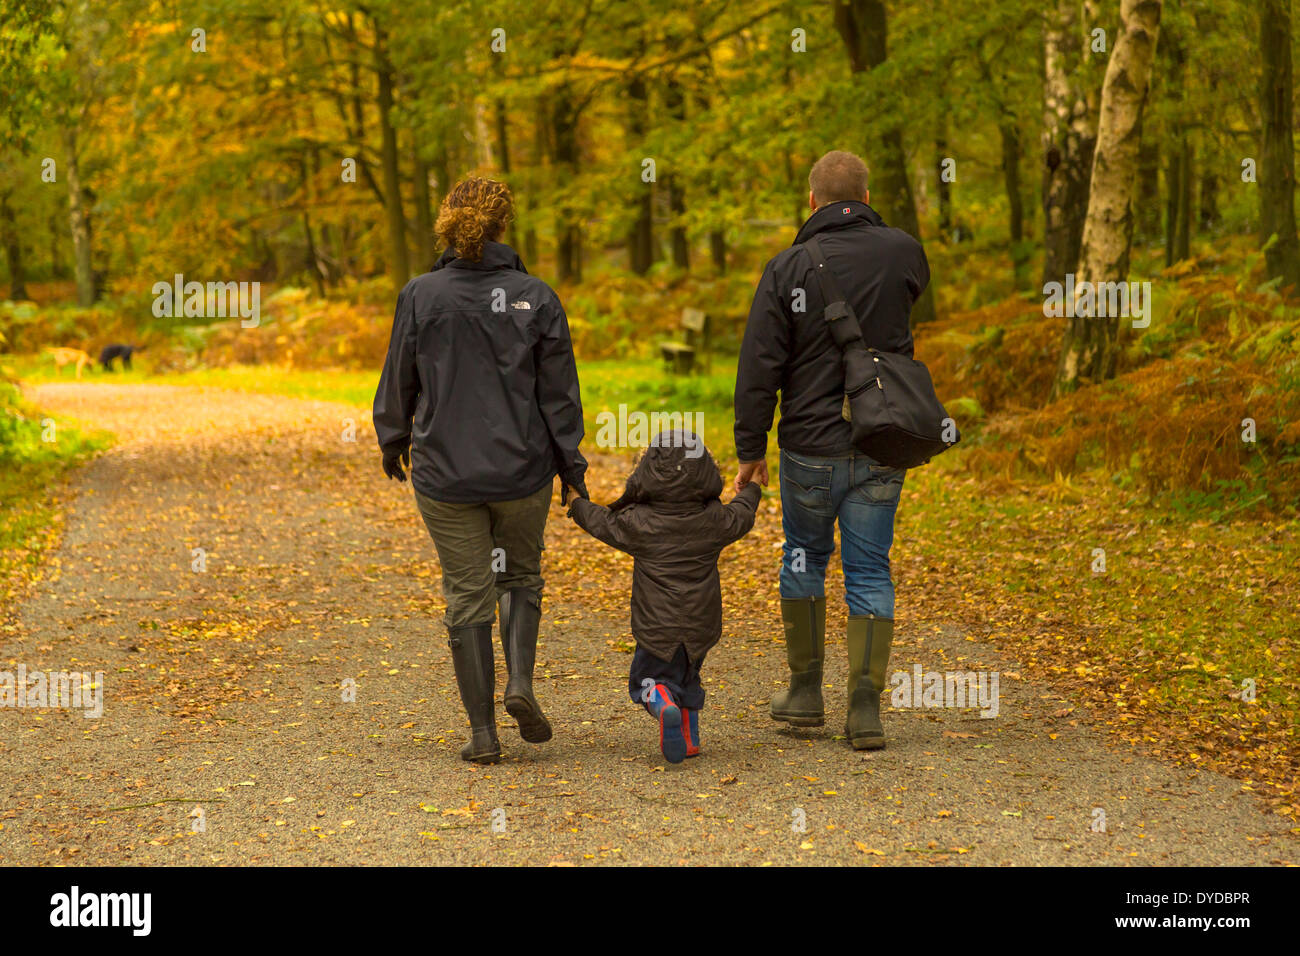 A youngster walks through woodland holding his parents hands. - Stock Image